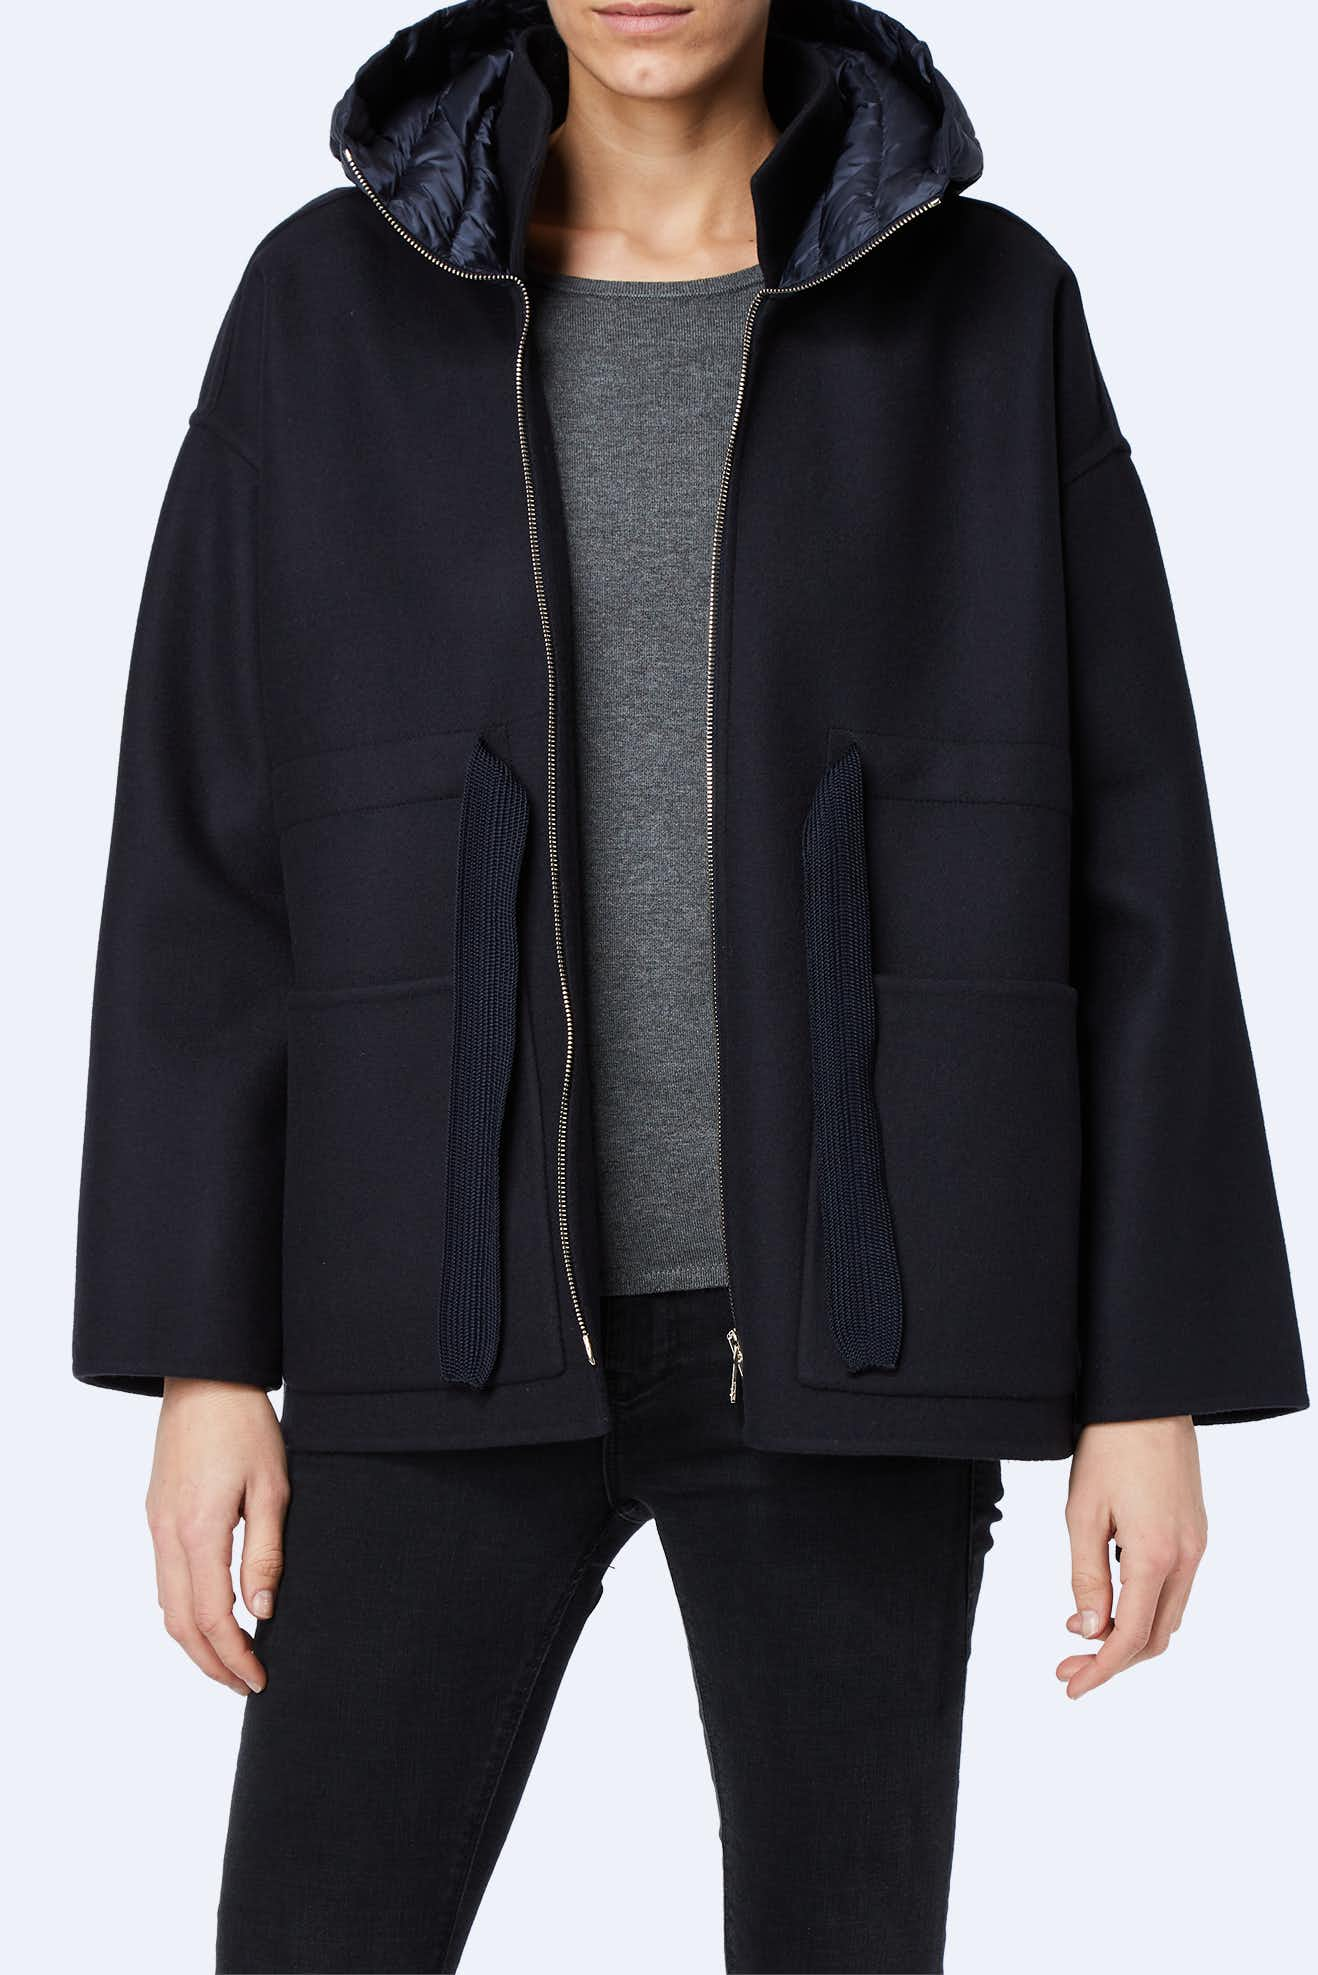 hot sale online 80eb6 7ec14 Wool and cashmere coat